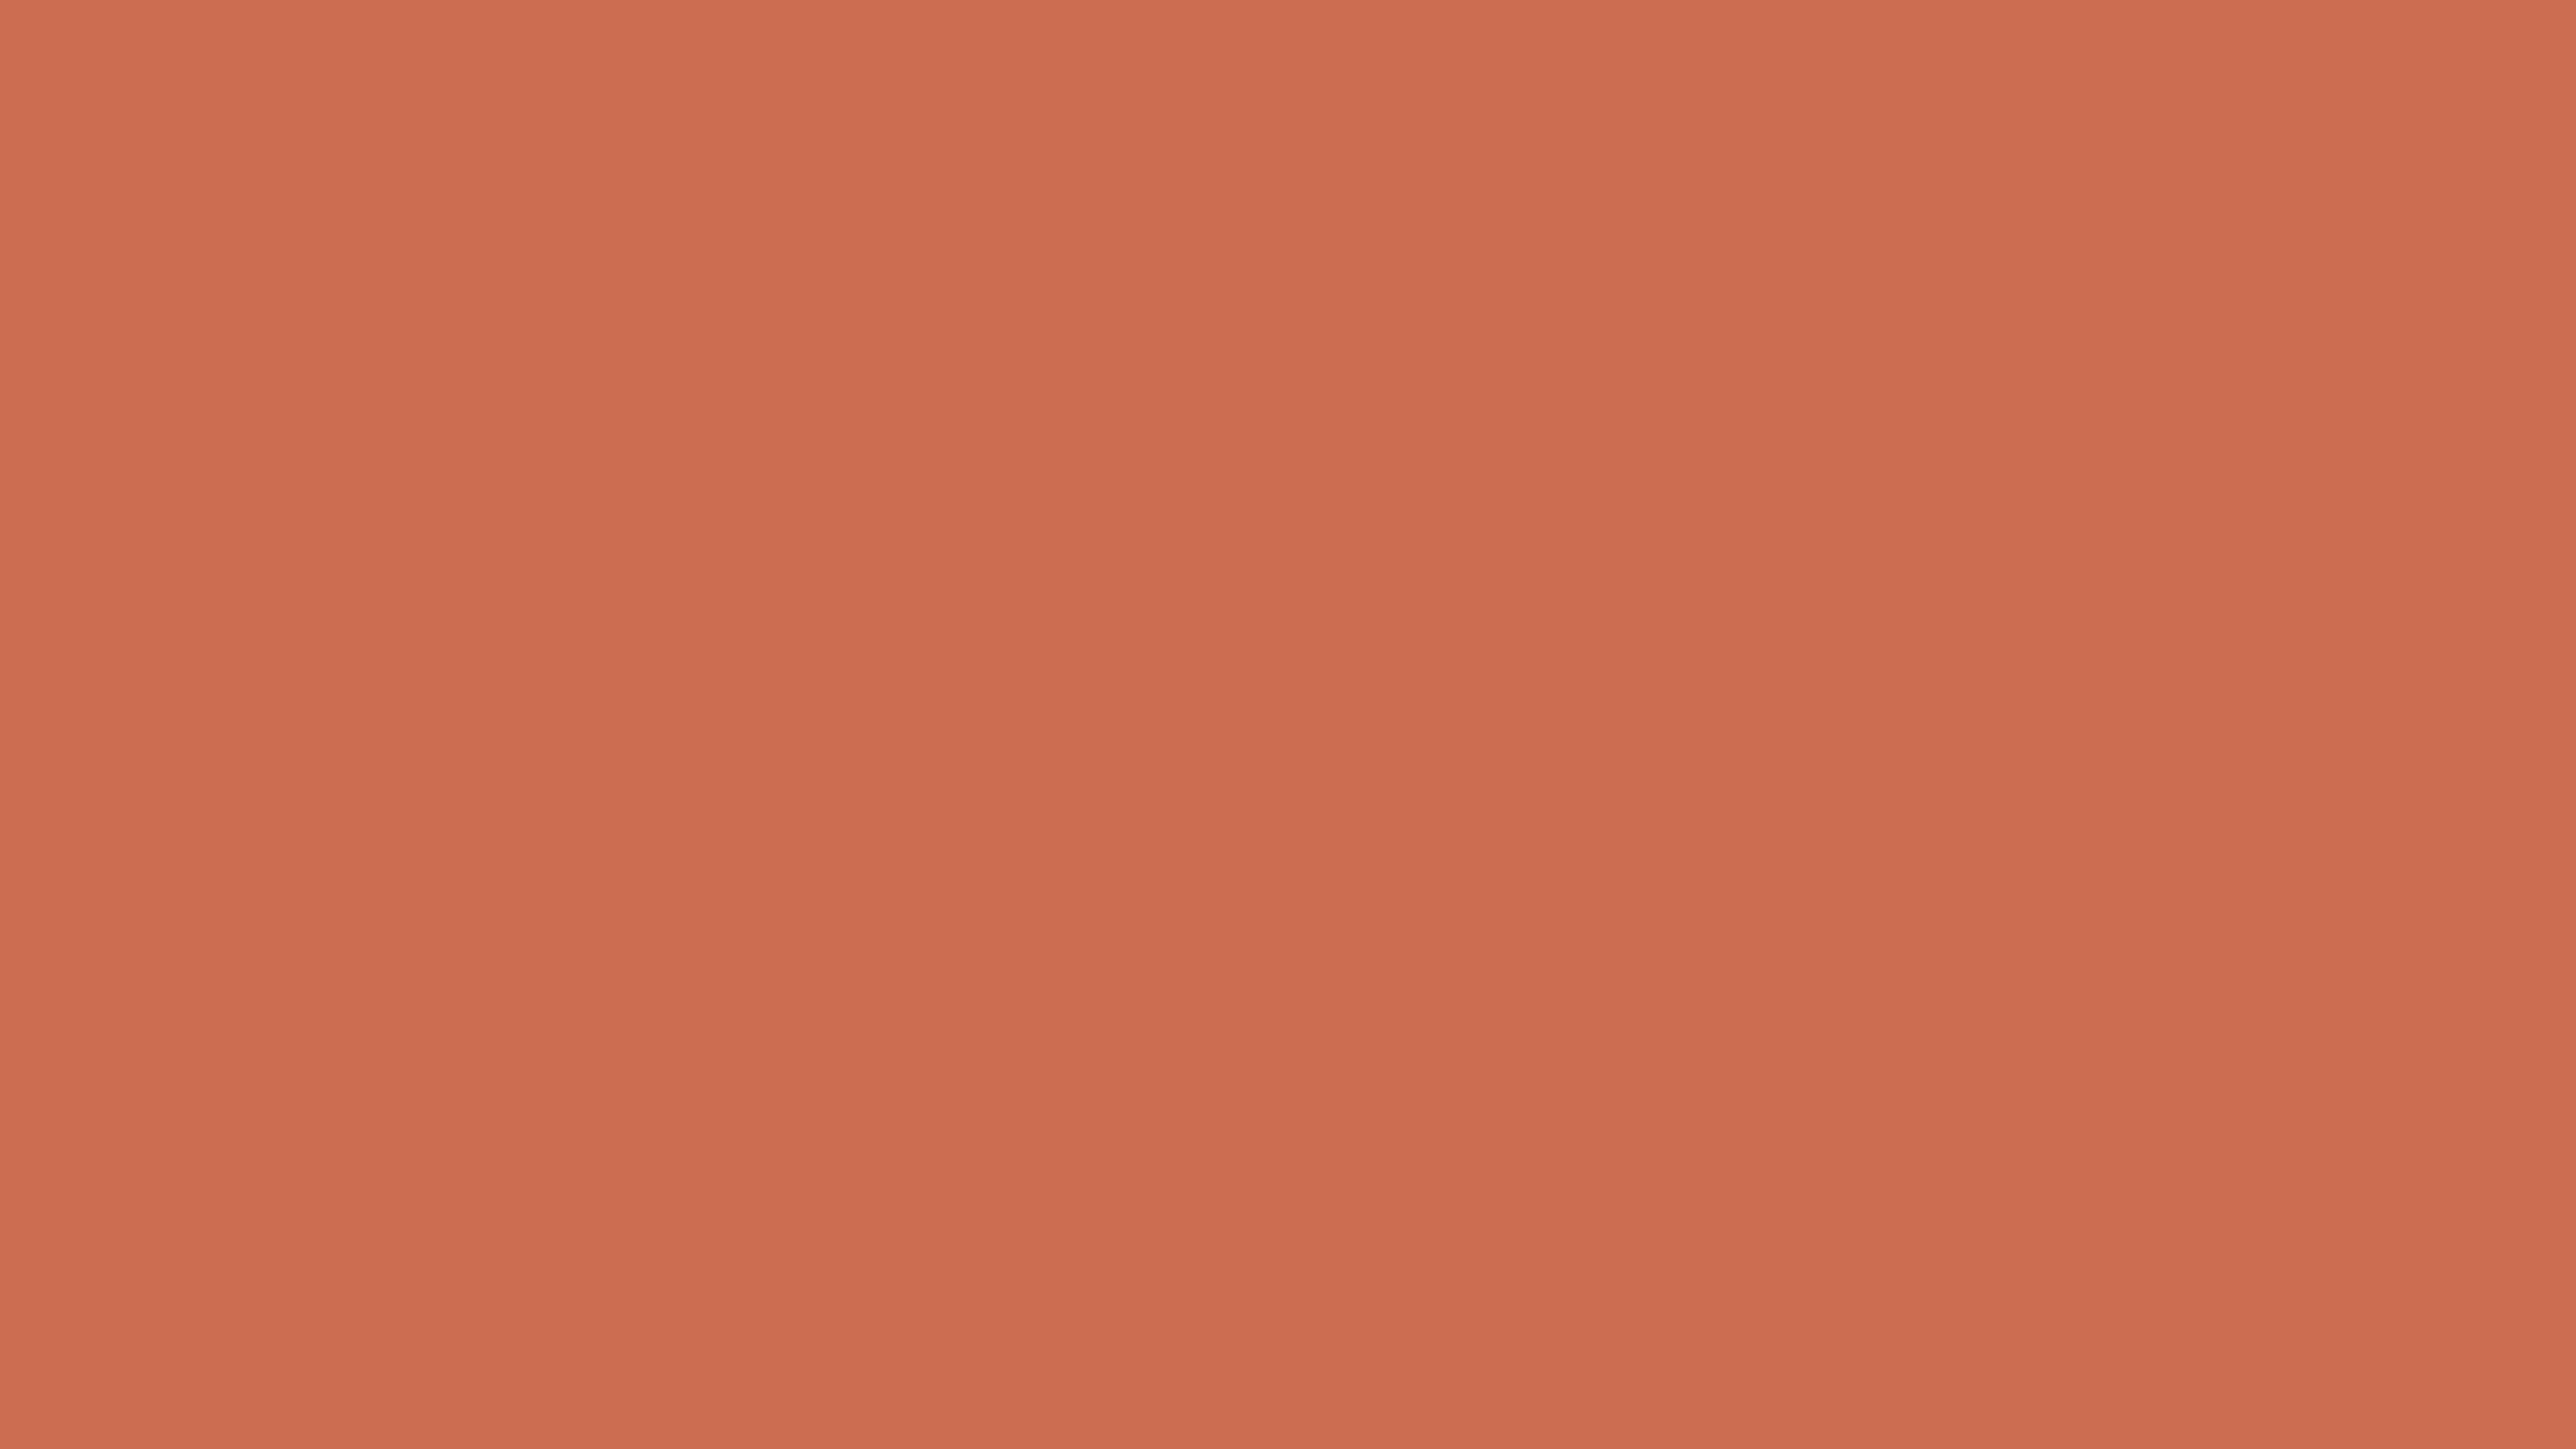 5120x2880 Copper Red Solid Color Background